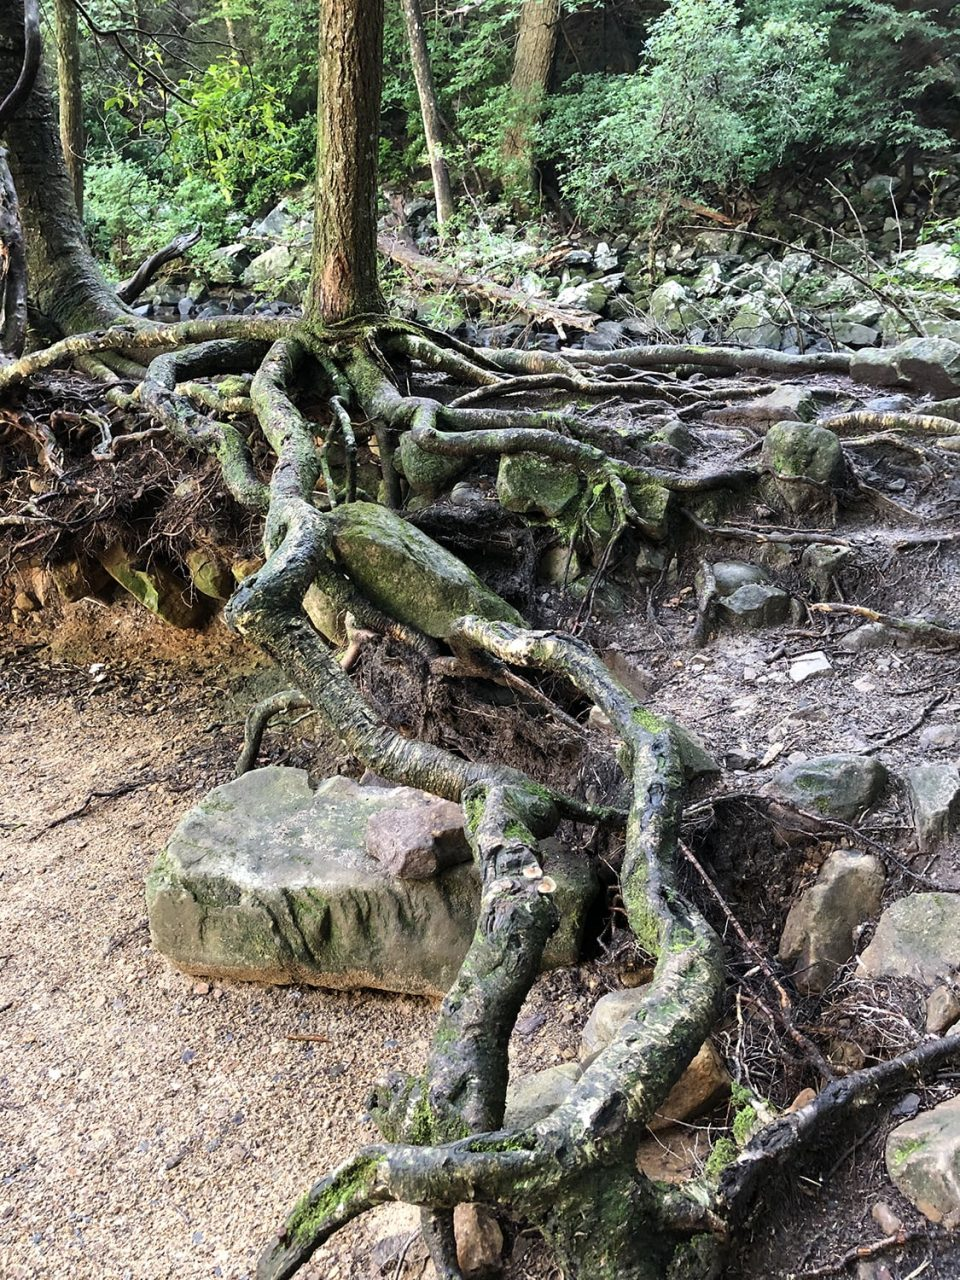 The tree roots along the stream and pool are insanely great: gnarly, twisted, thick, and mossy.